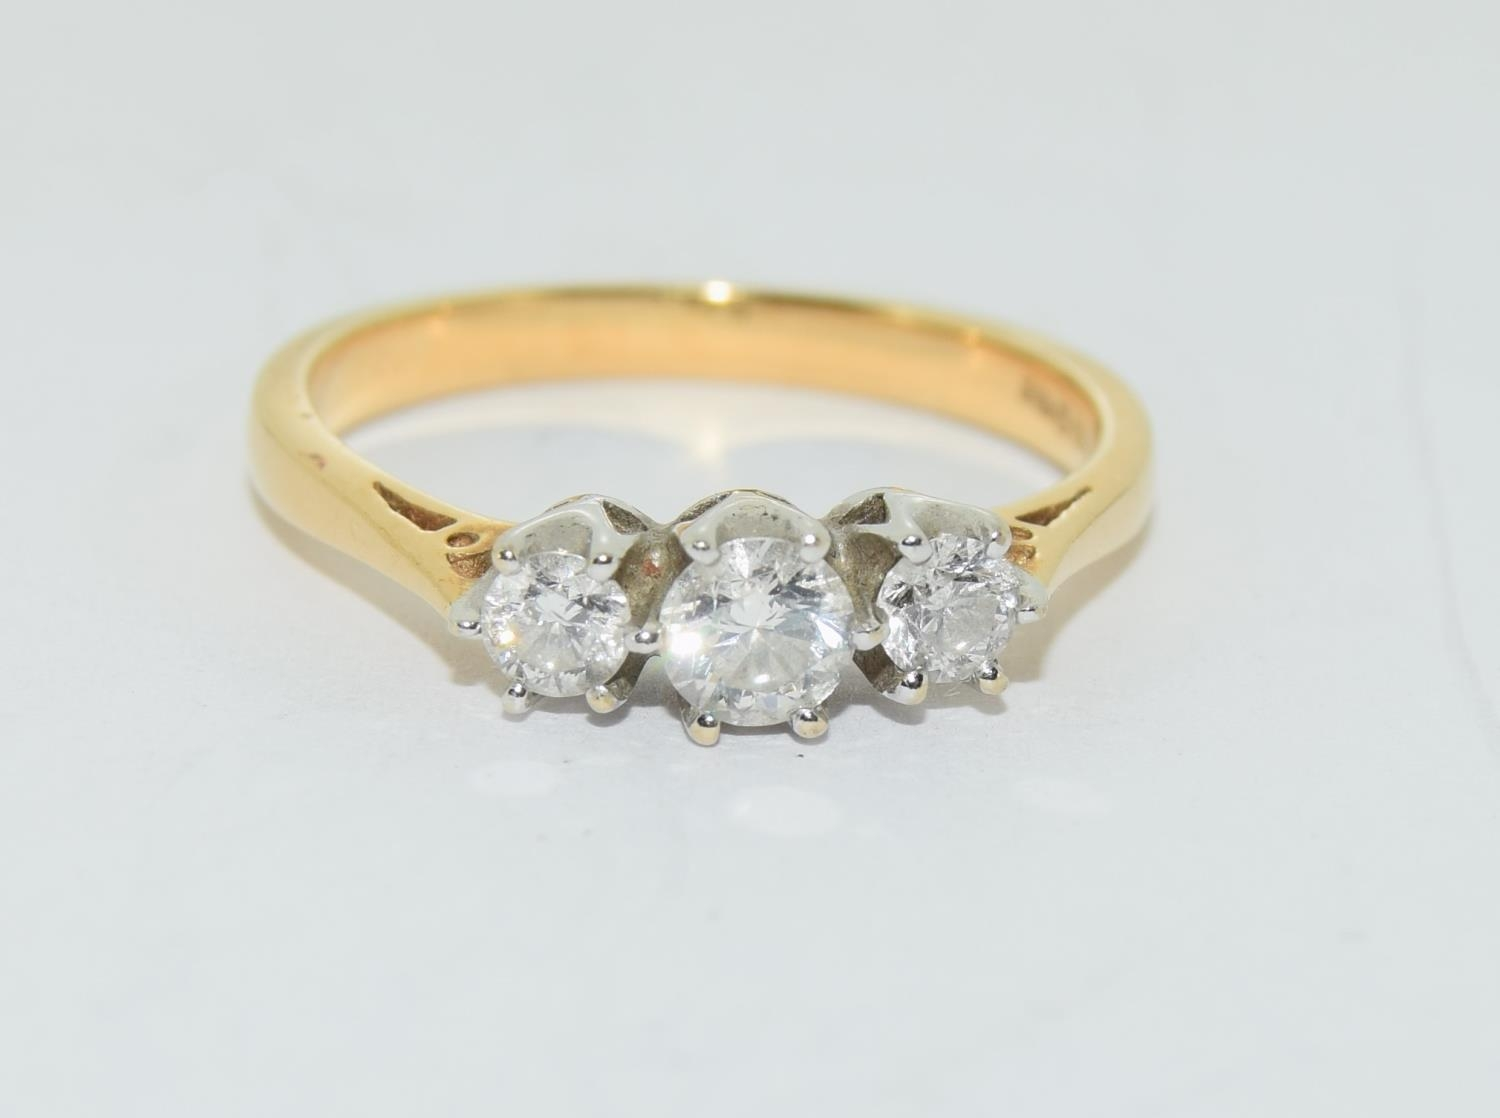 Diamond 3 stone aprox 0.50 points 18ct gold ring size O.